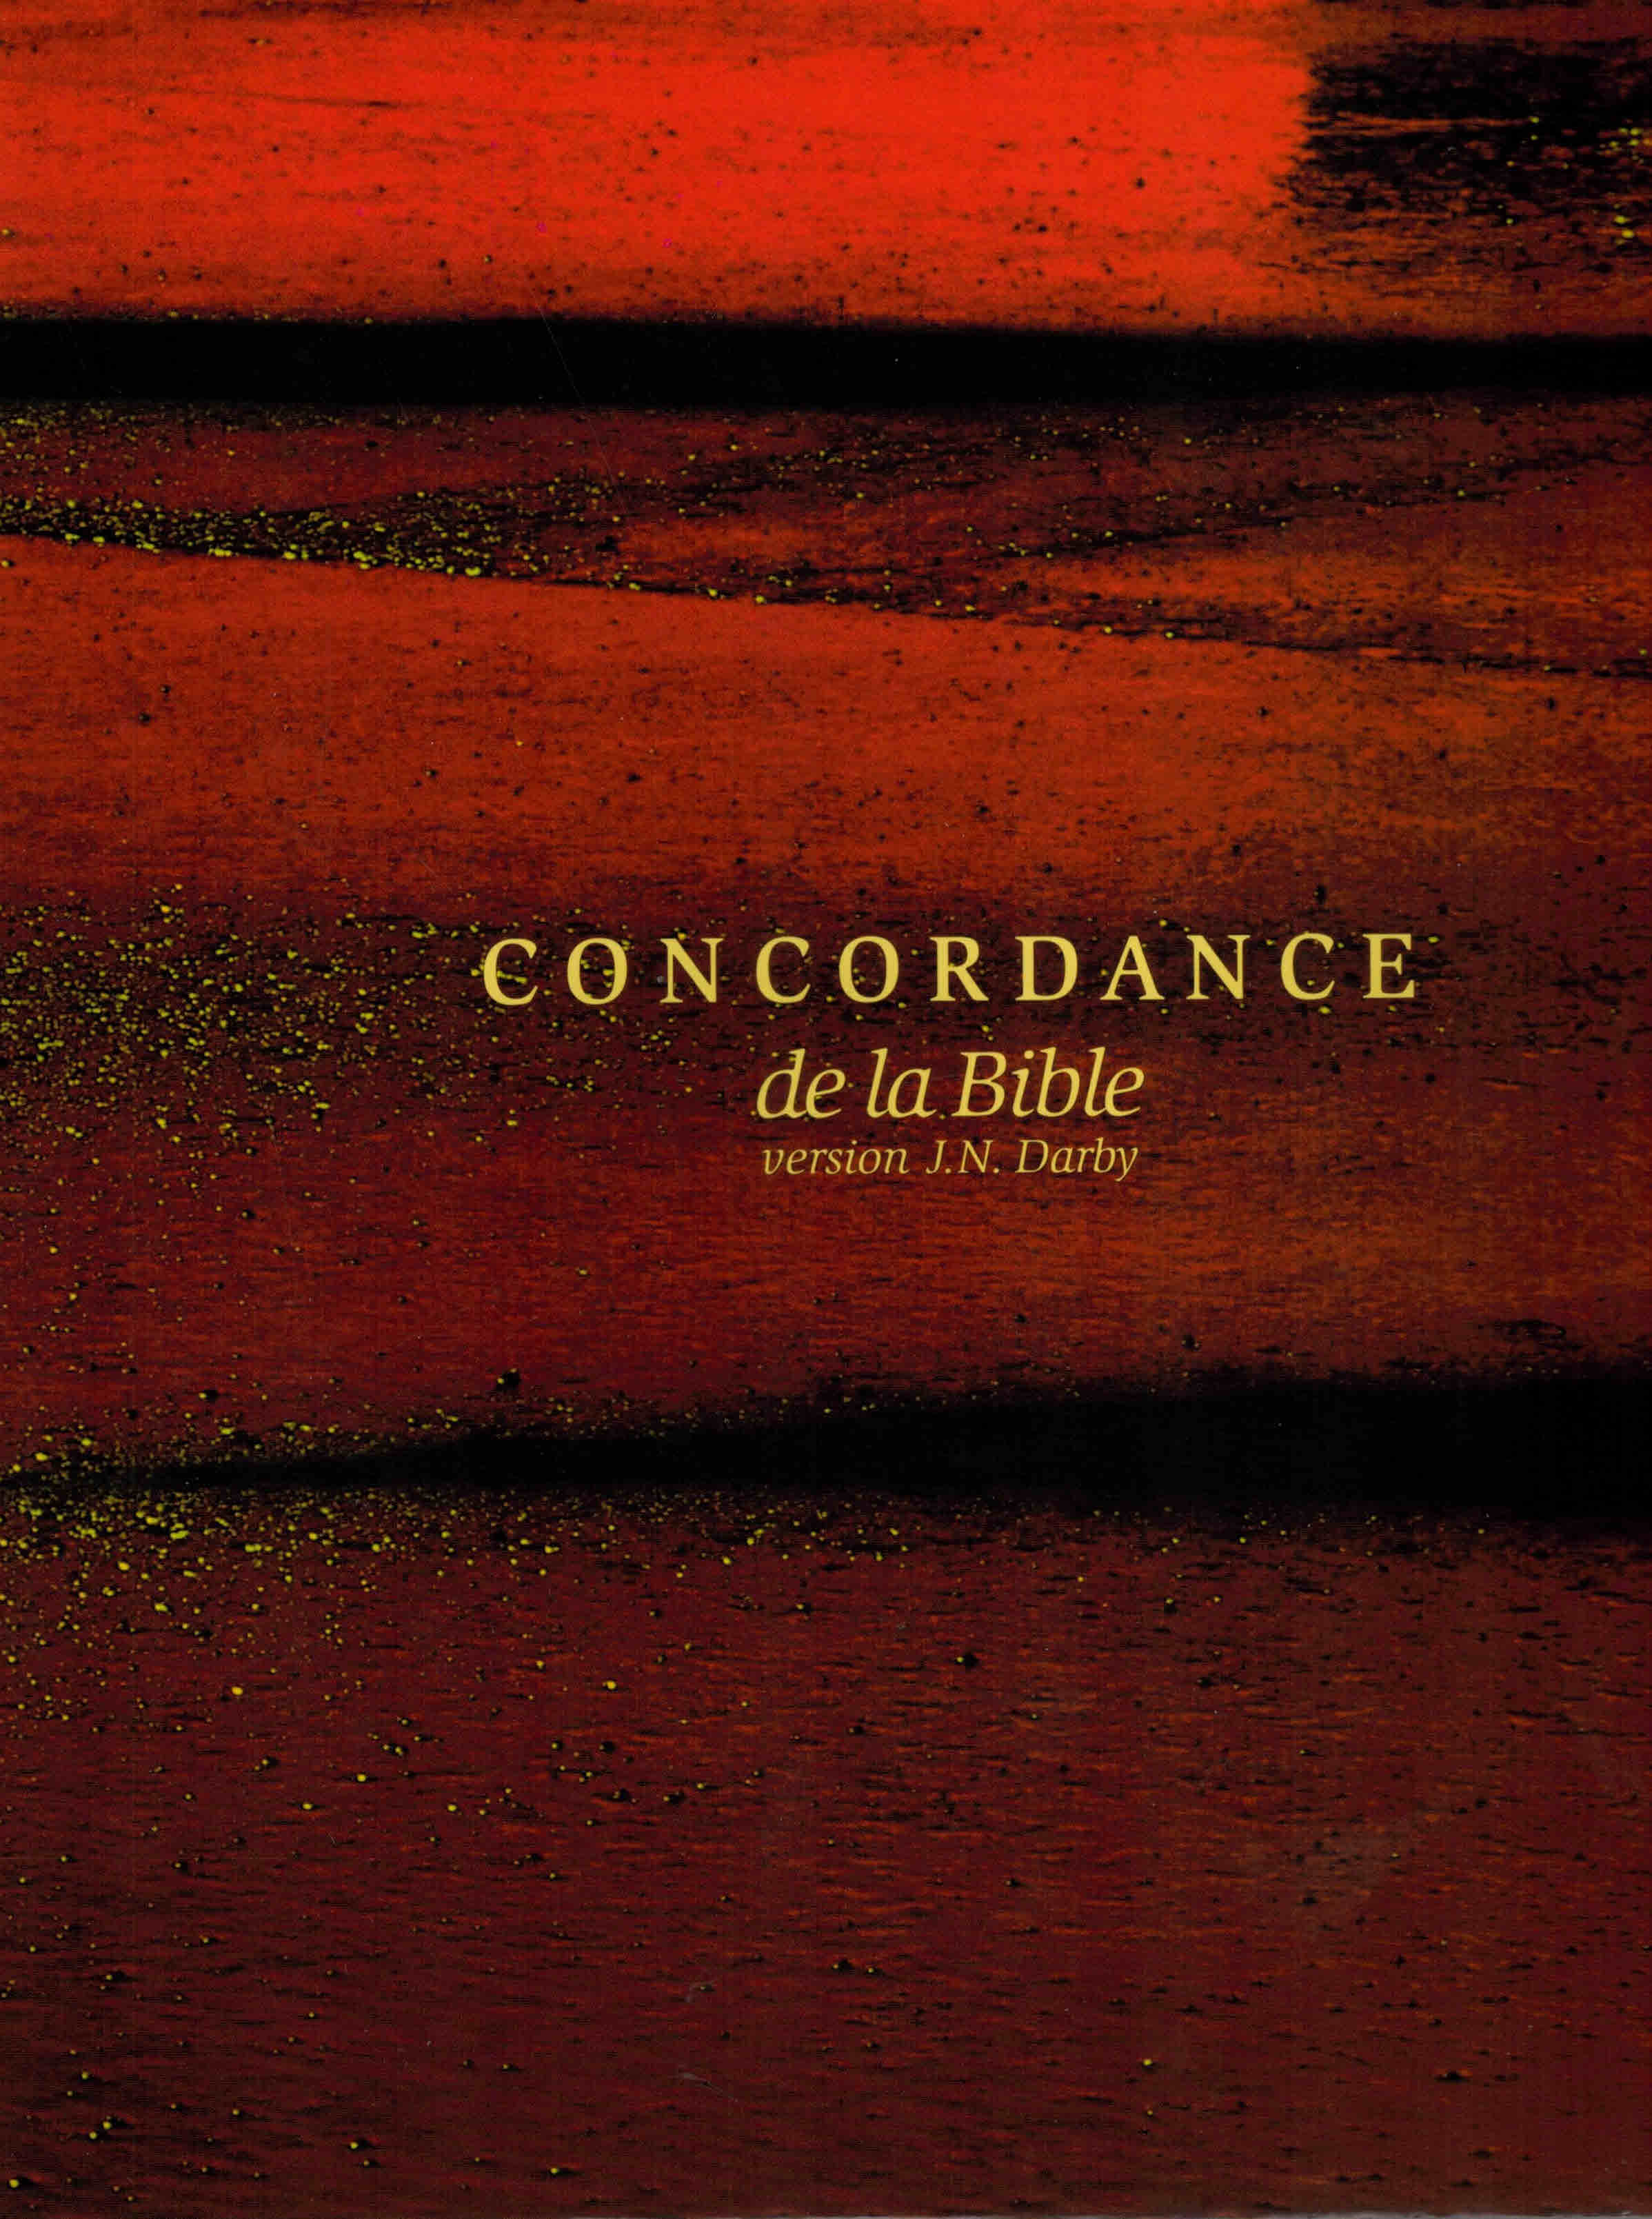 Concordance de la Bible version Darby